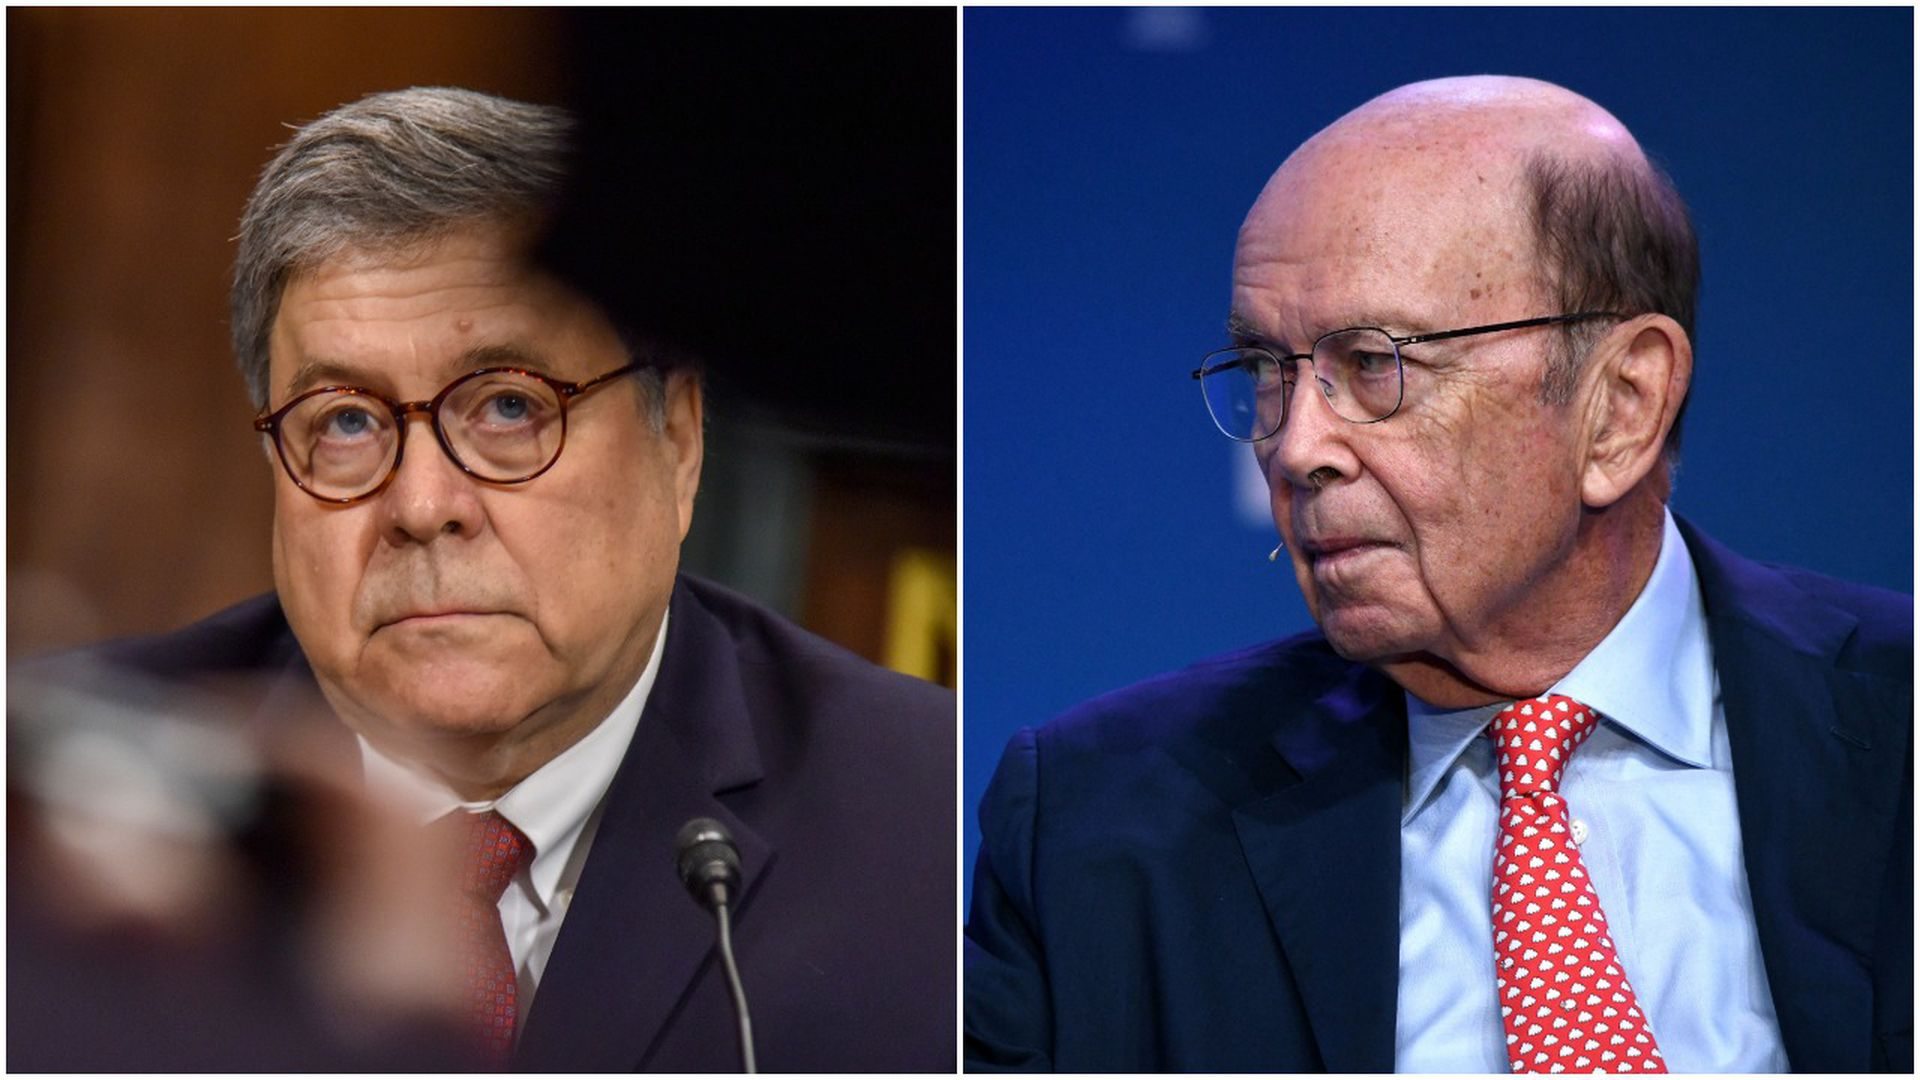 This image is a split screen of Bill Barr and Wilbur Ross.